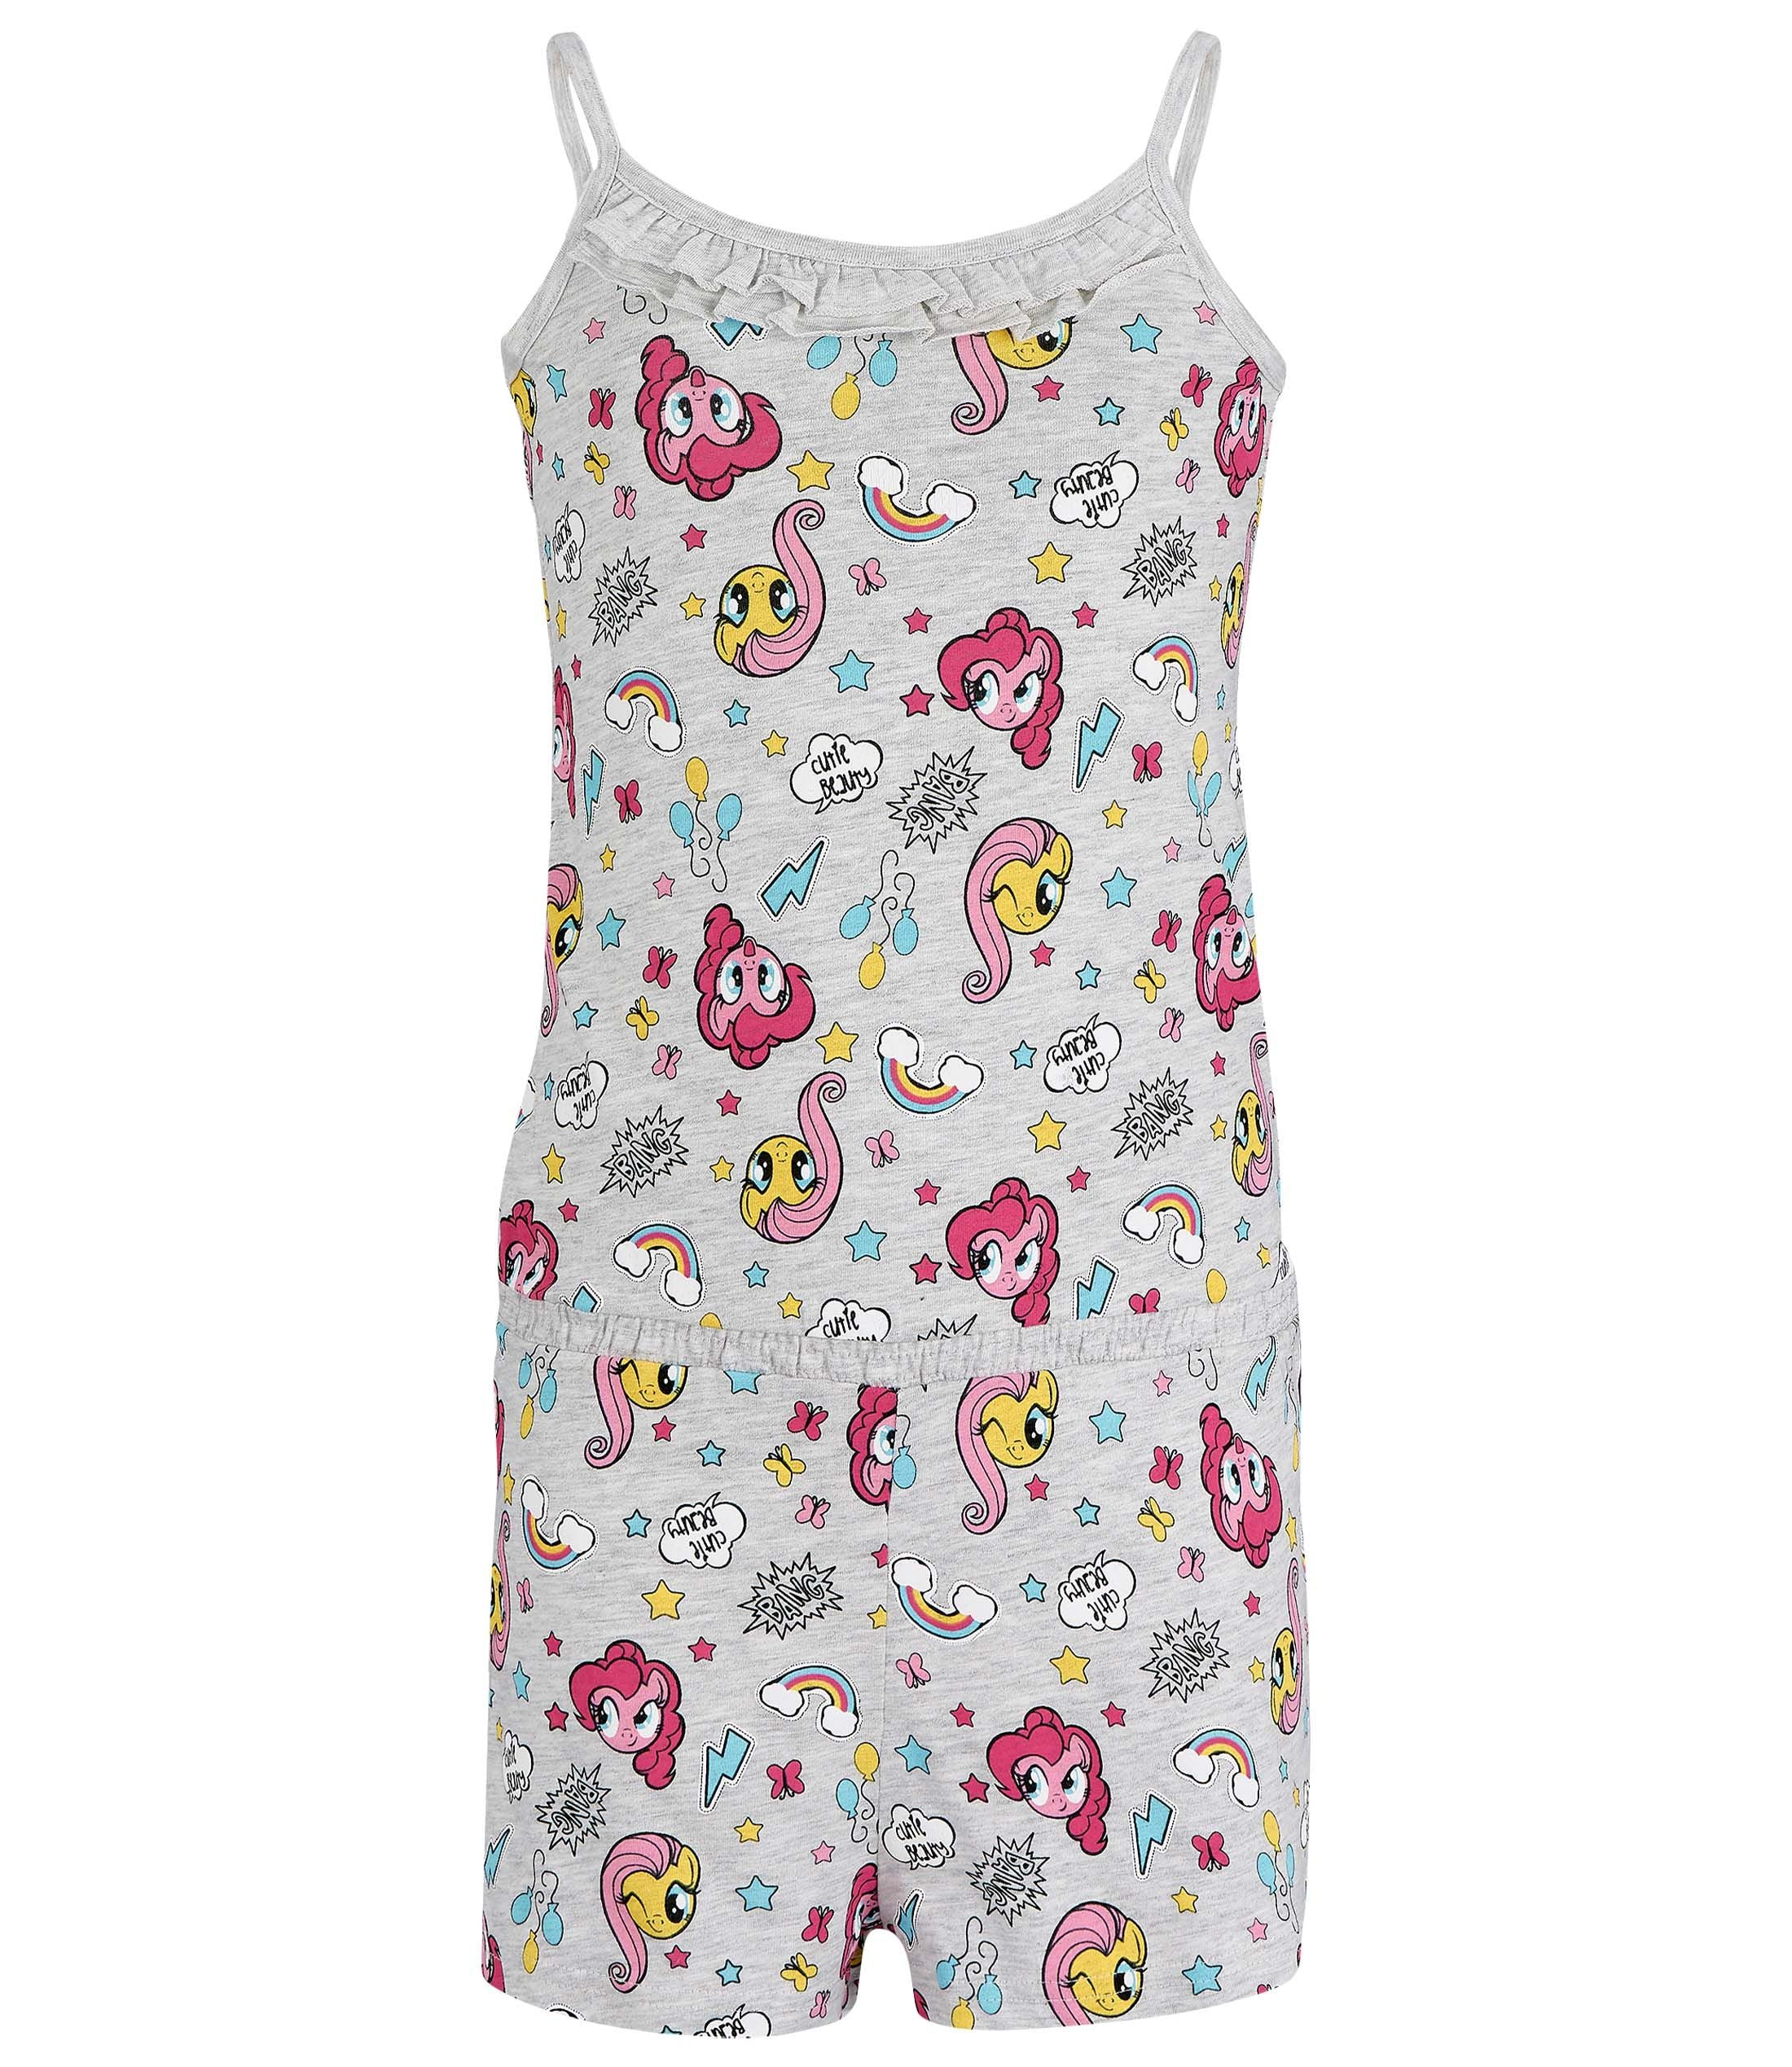 01de5915e My Little Pony Girls Playsuit One Piece Cotton Summer Outfit 2-8 ...